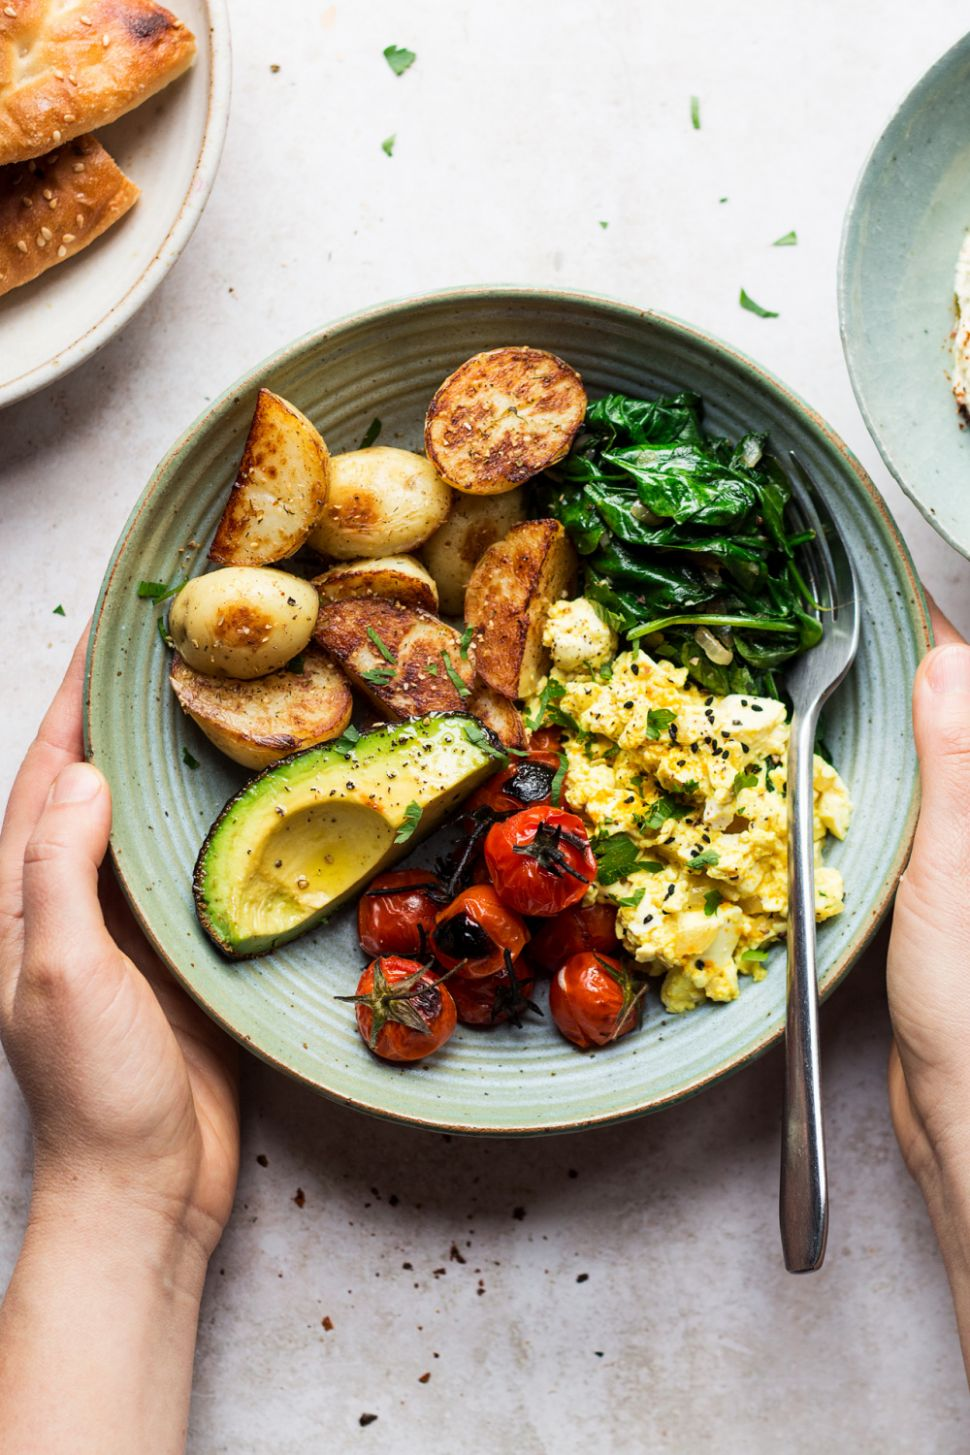 Savoury vegan breakfast bowl